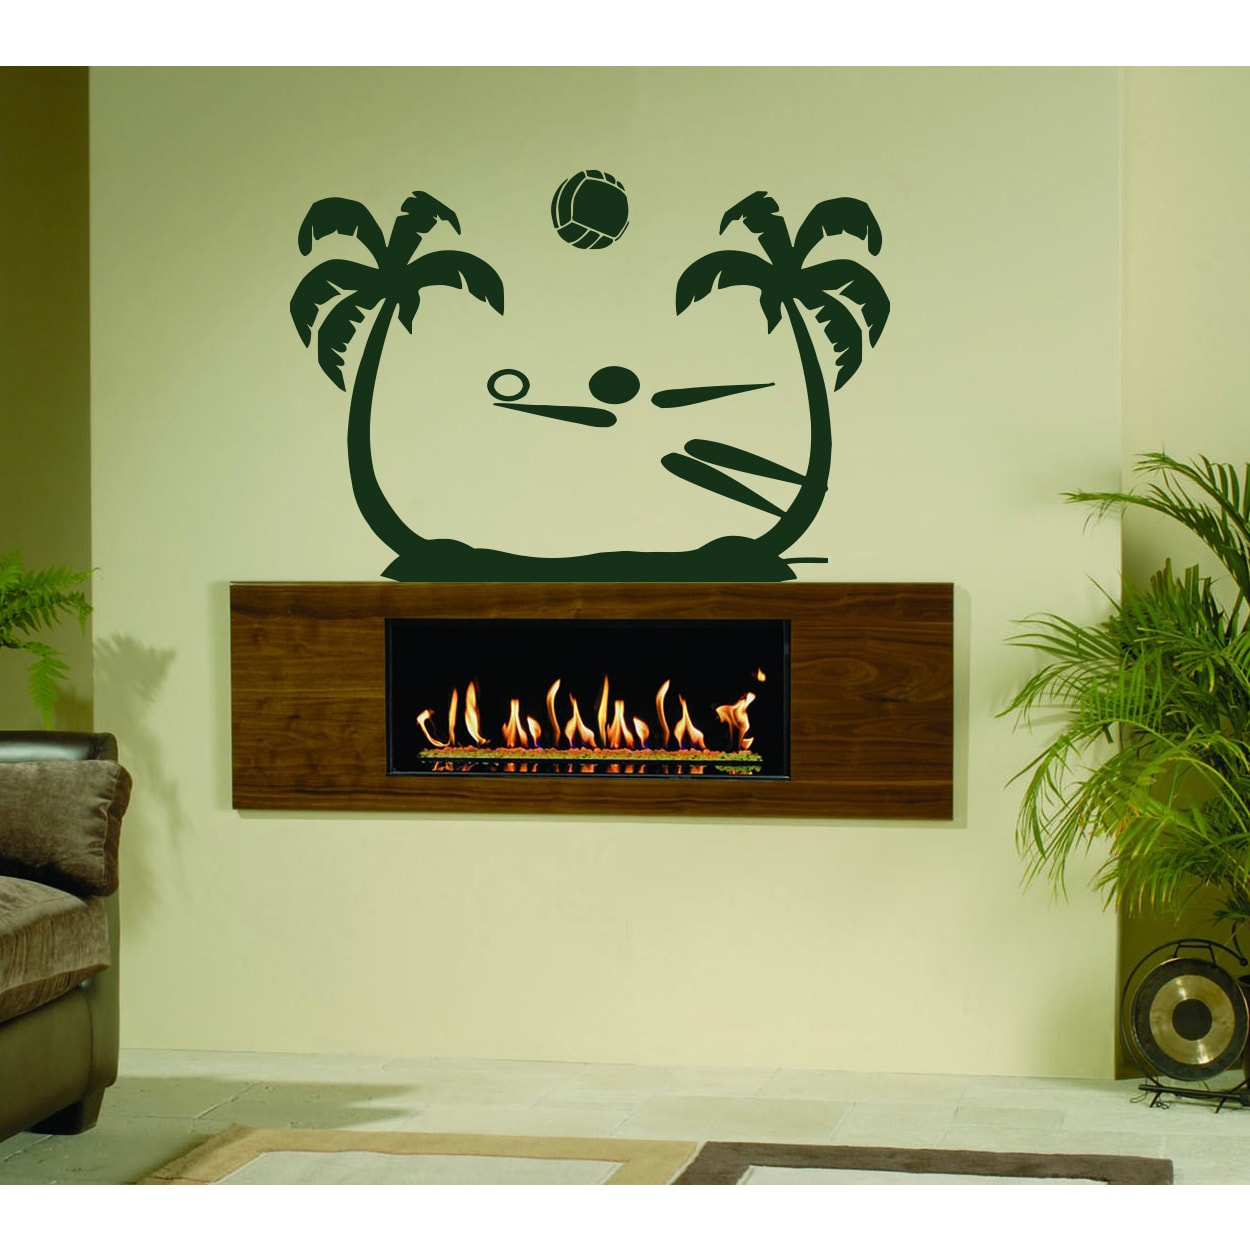 The game of volleyball on the beach Wall Art Sticker Decal Green ...